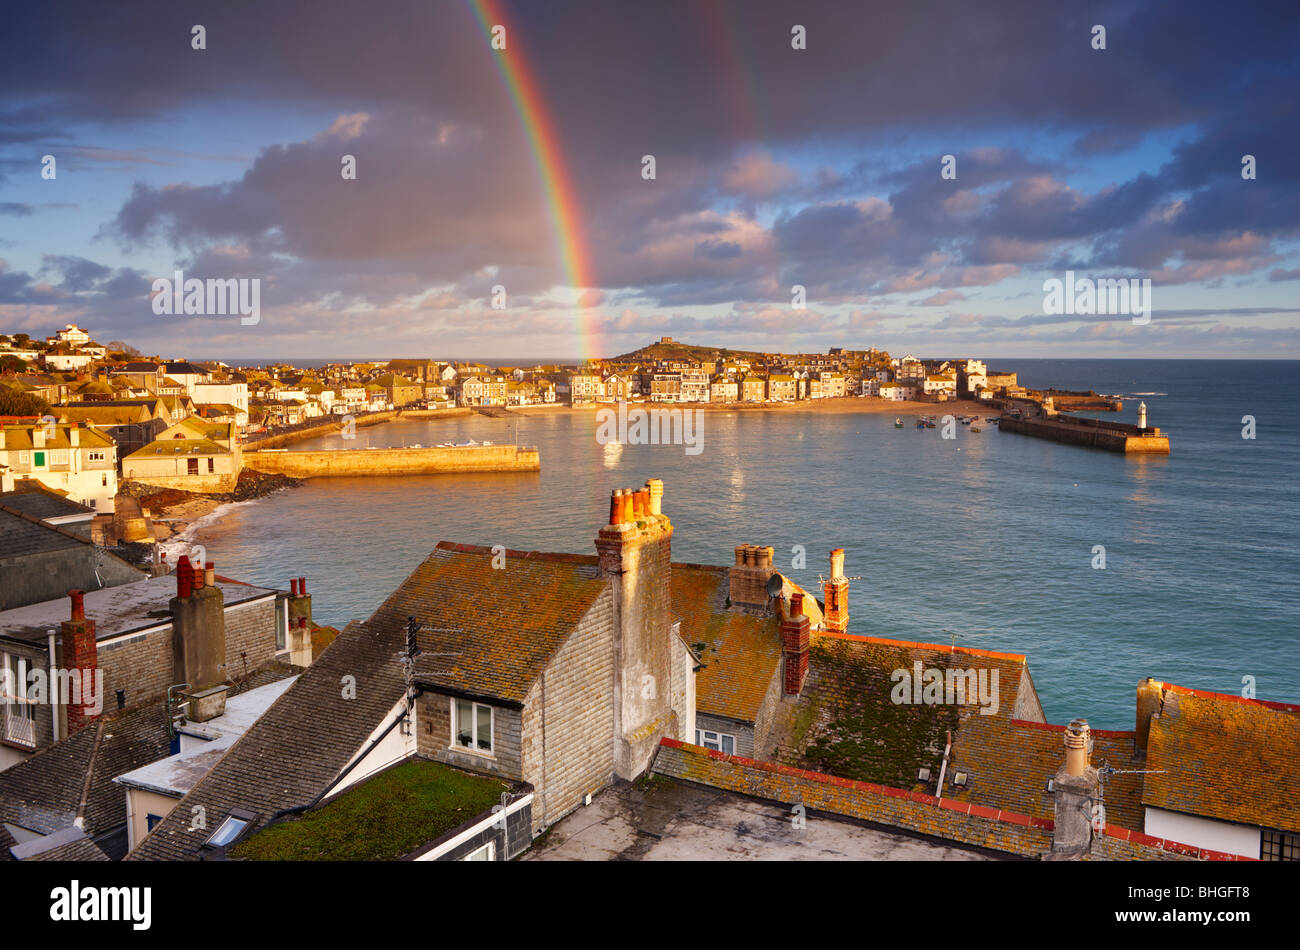 A gift for Christmas! Rainbow above St Ives harbour on Christmas Day 2009. - Stock Image